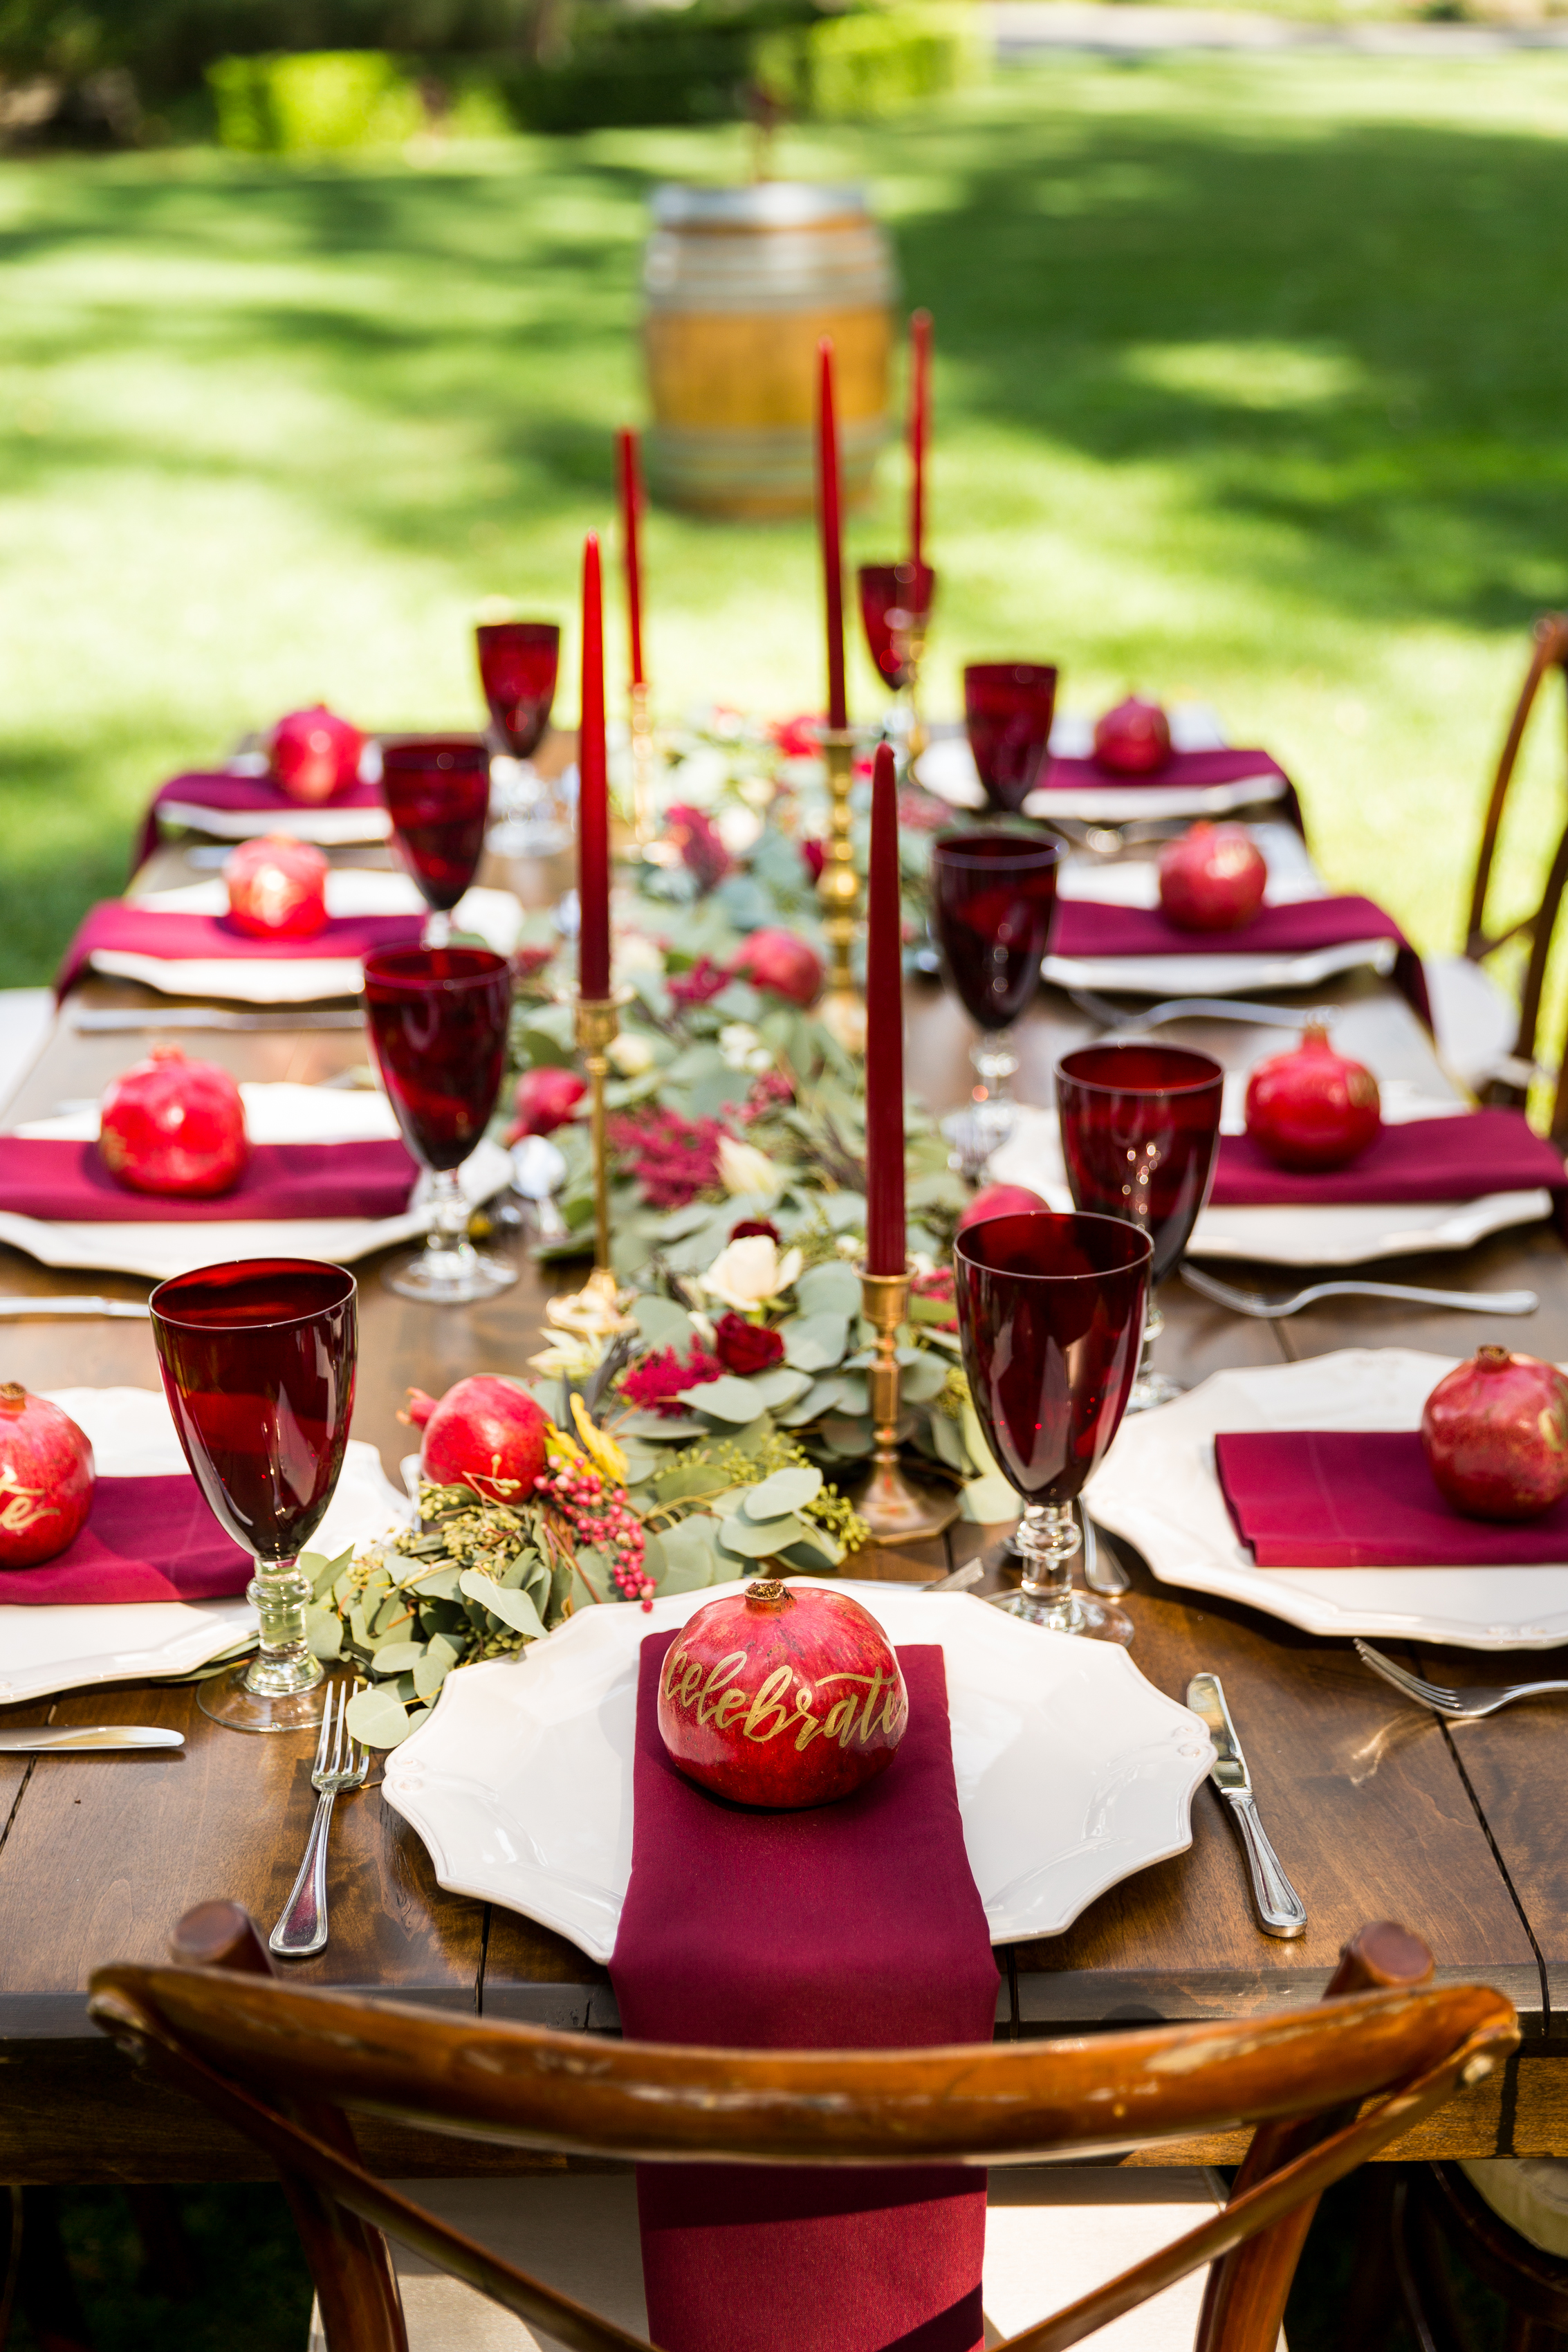 Event Design & Coordination: Simple Little Details Photography: Daniel McElmury Photography  Venue: Allora Vineyards Rentals: Standard Party Rentals Florals: Mack Floral Design Catering: Oak Avenue Catering Desserts: Sweet Tooth Confections Bakery